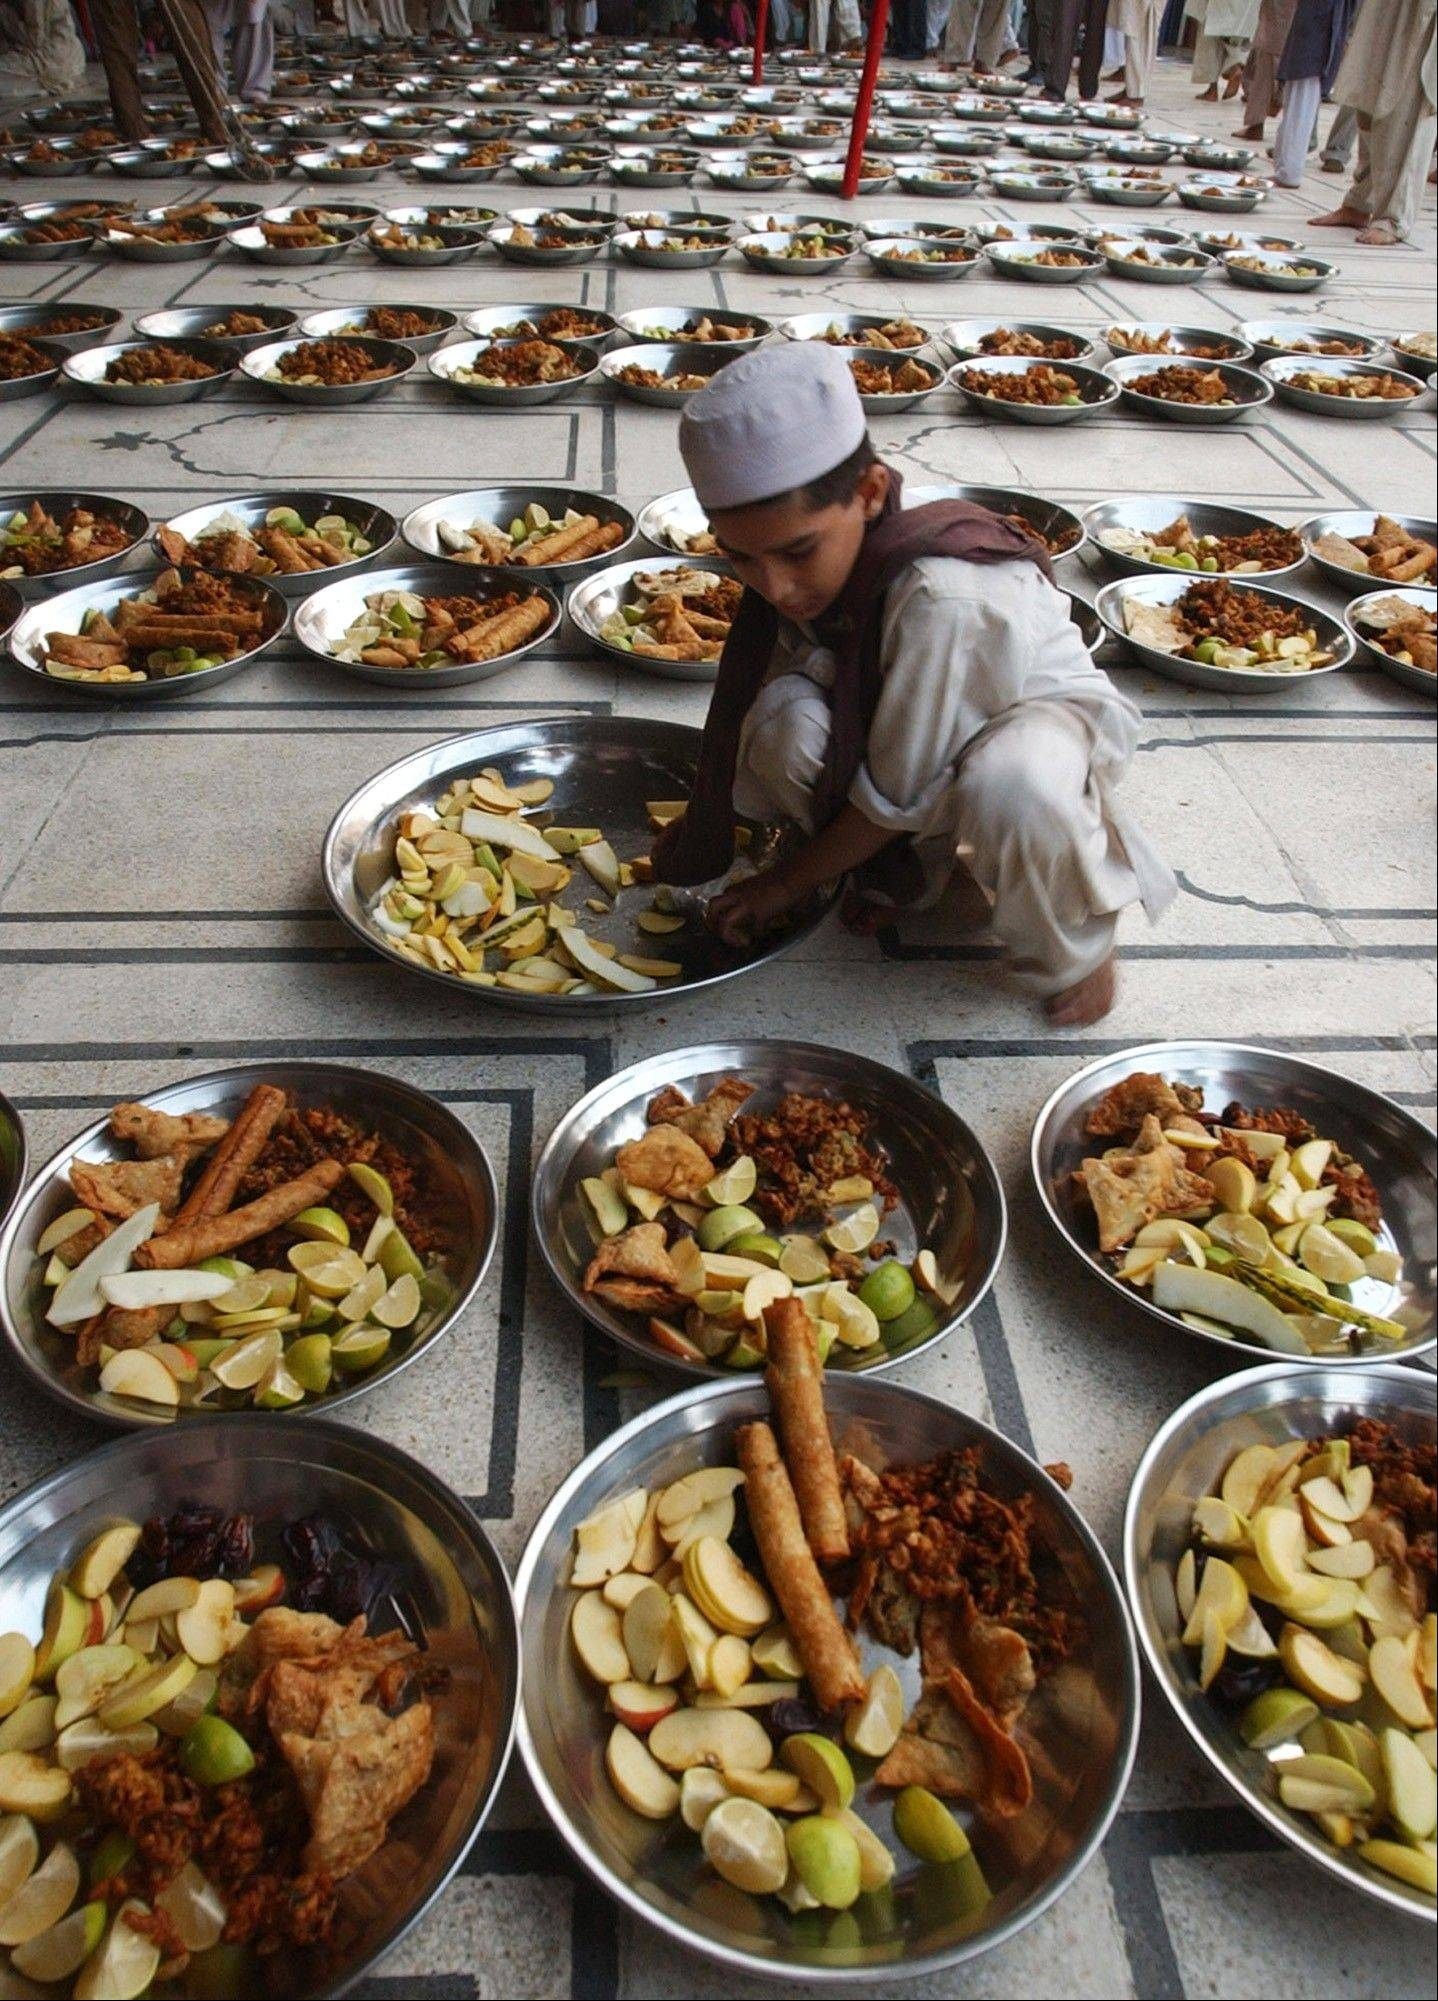 In this image taken on Sept. 25, 2006, a Pakistani boy arranges dishes of fruits and other items for Muslims to break their first fast at a local mosque in Karachi, Pakistan. During Ramadan observant Muslims refrain during daylight hours from eating, drinking and smoking.